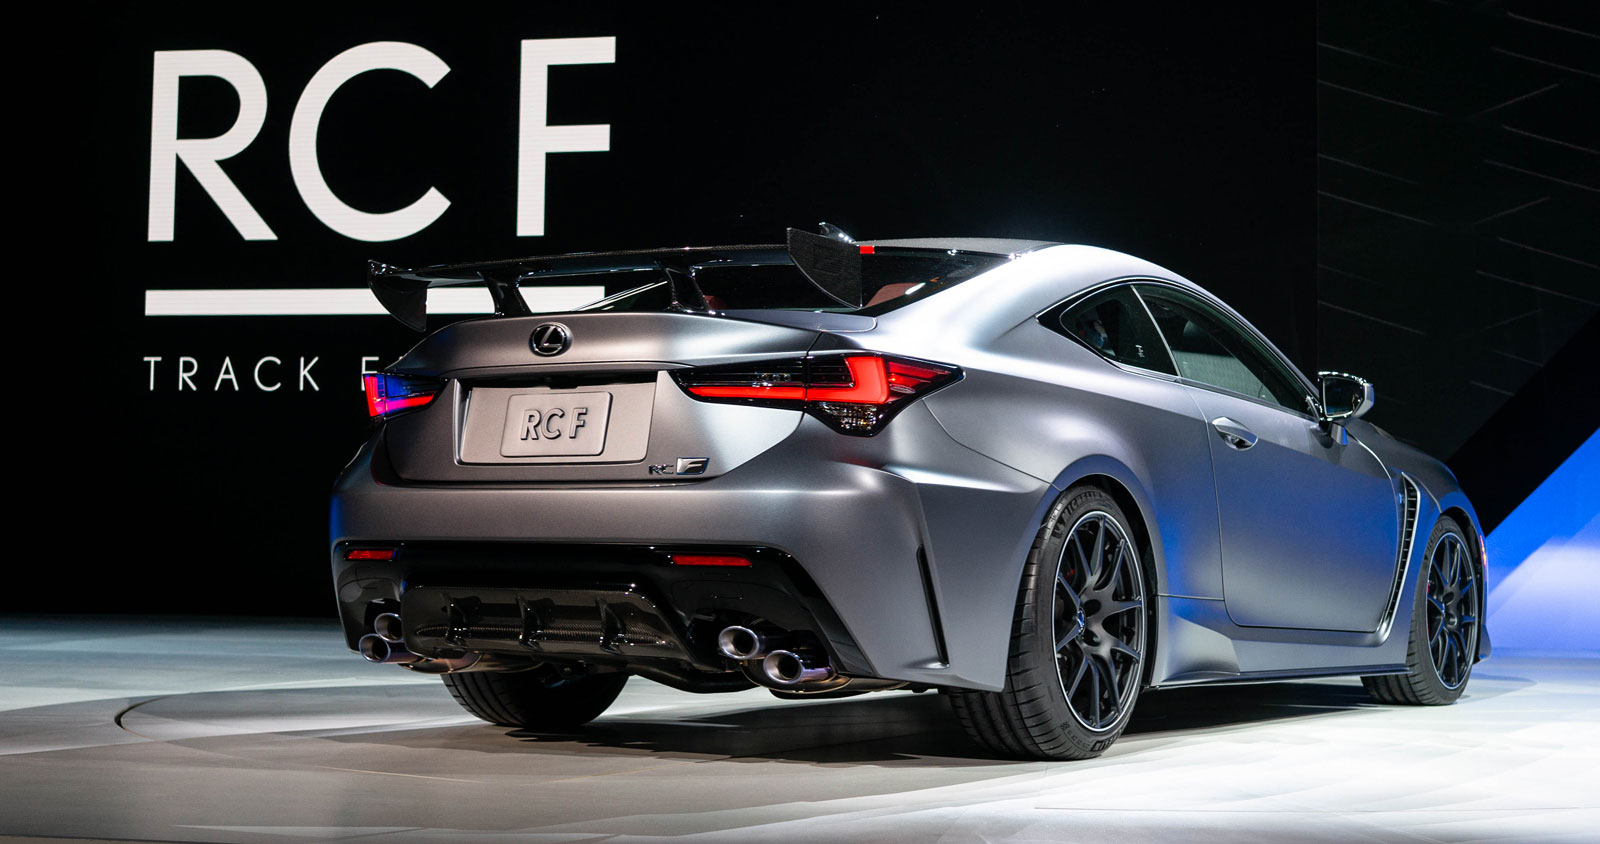 Lexus RC F Track Rear 2